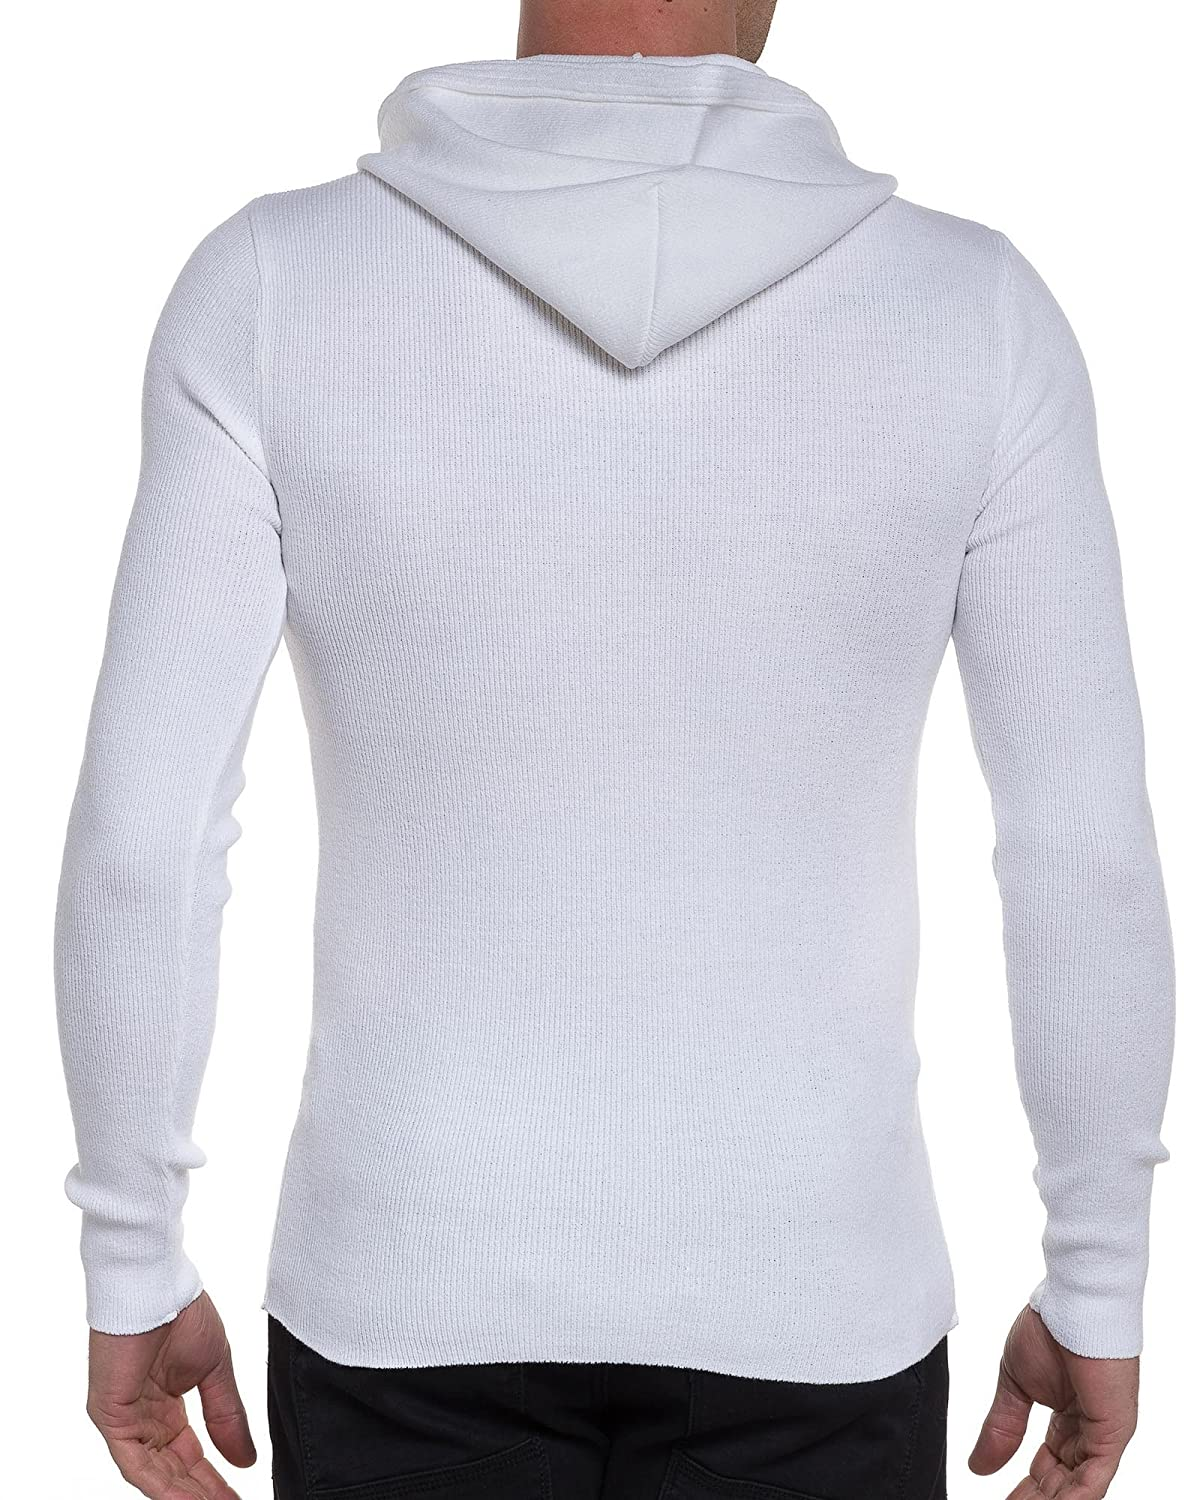 BLZ jeans - basic ribbed white collar hooded sweater buttons